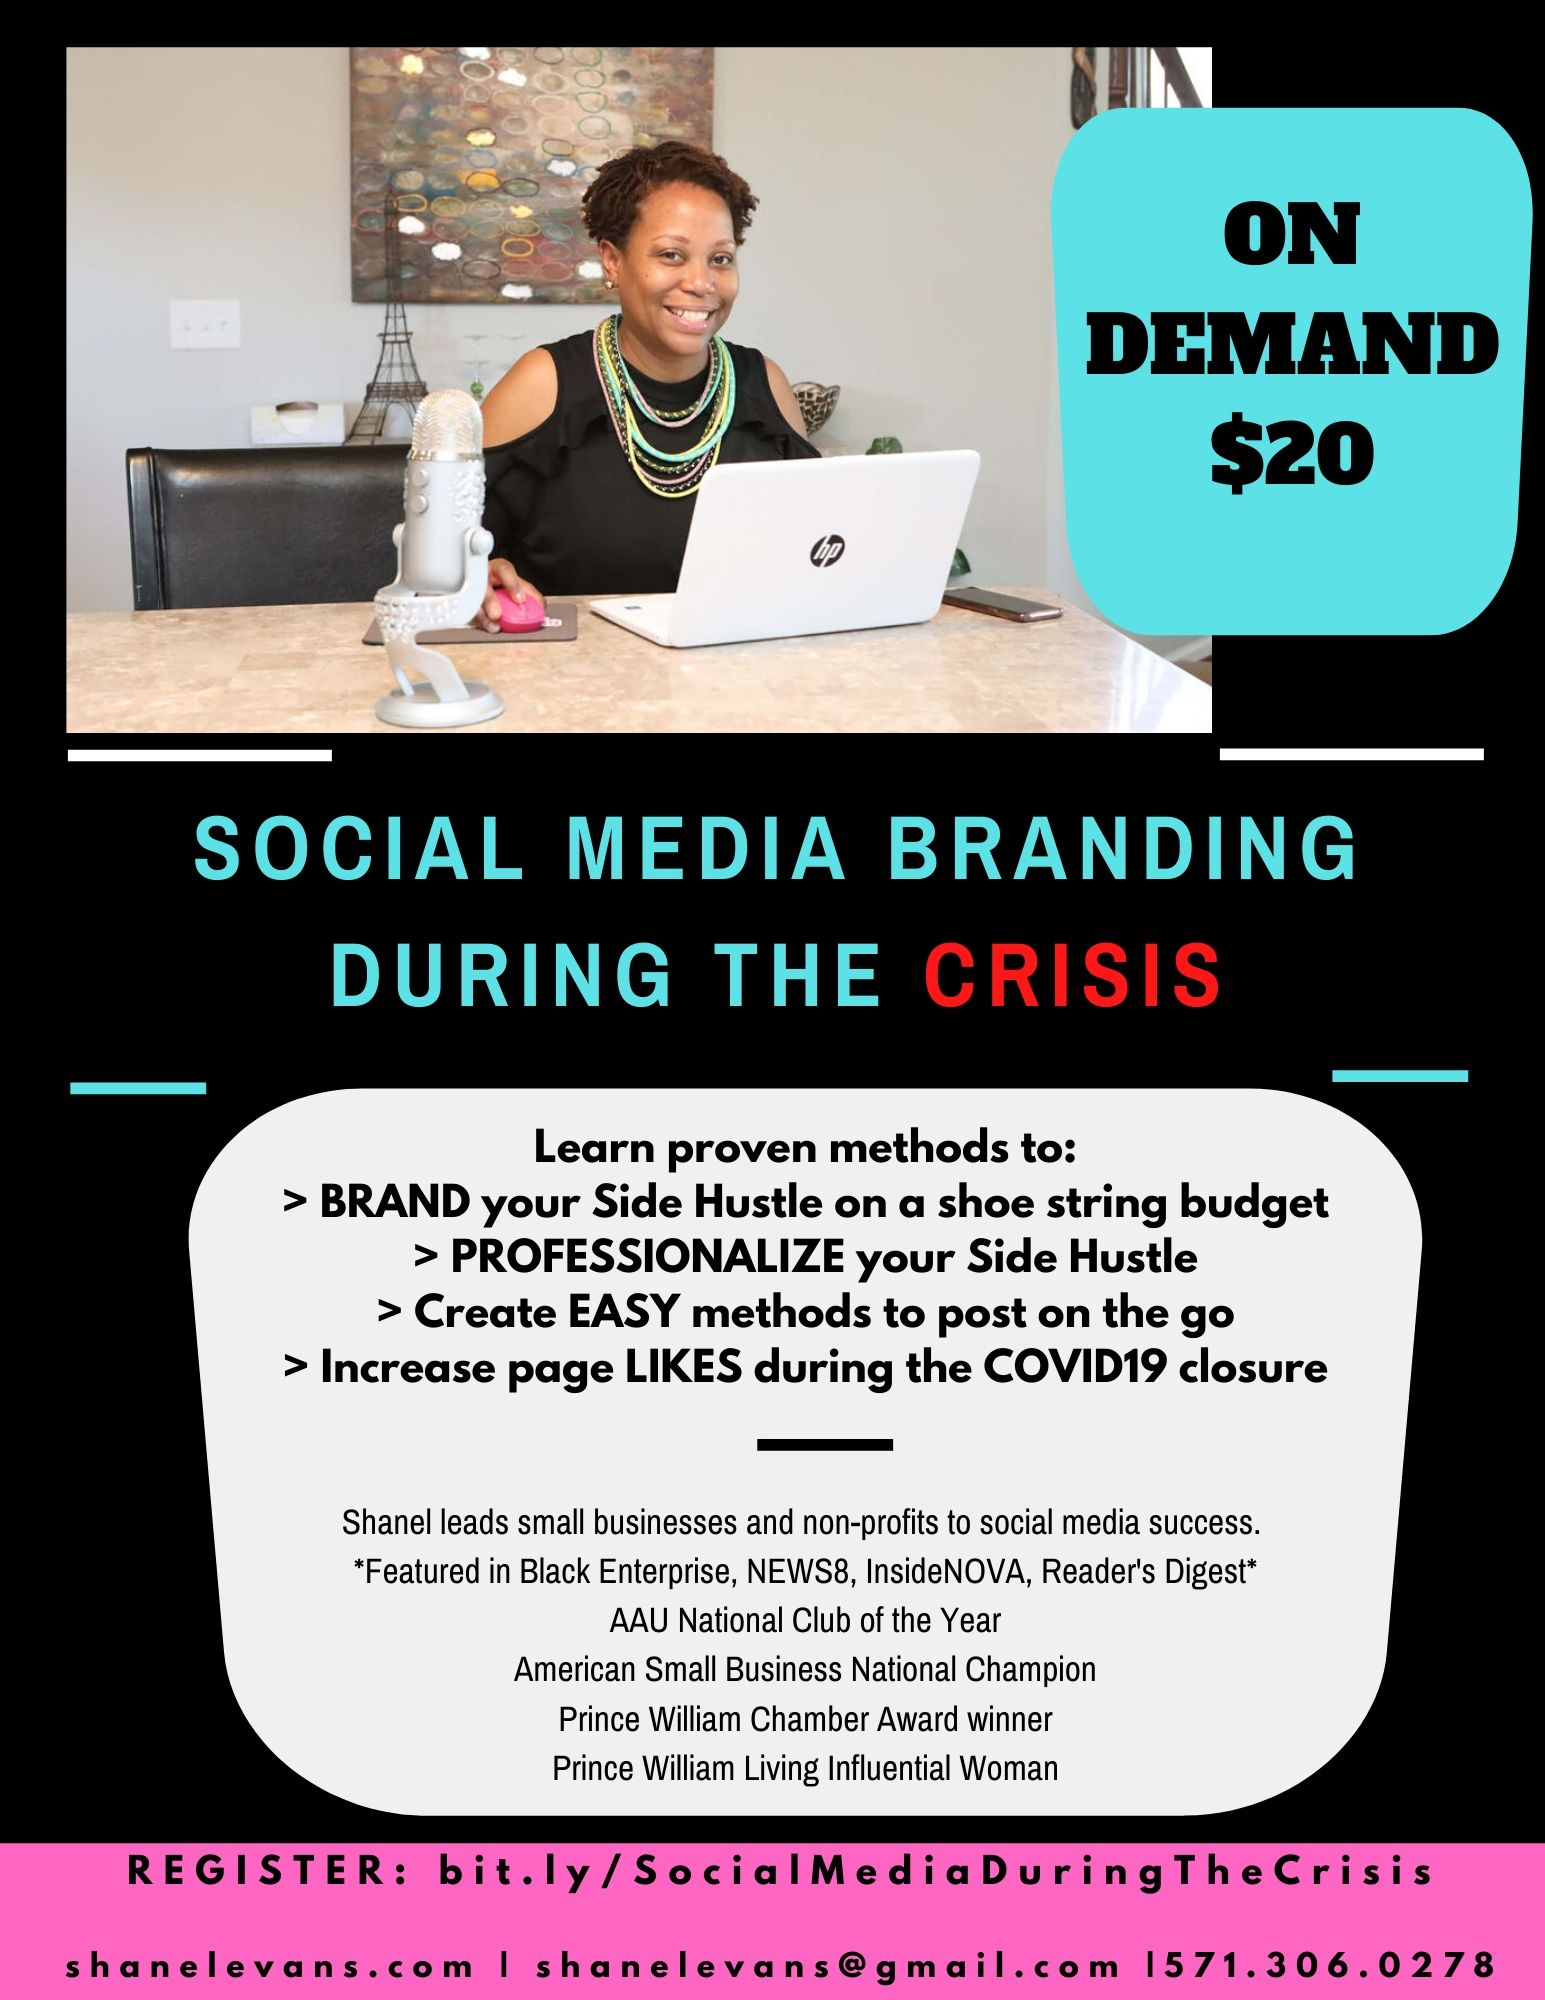 Shanel's - SOCIAL MEDIA during the Crisi